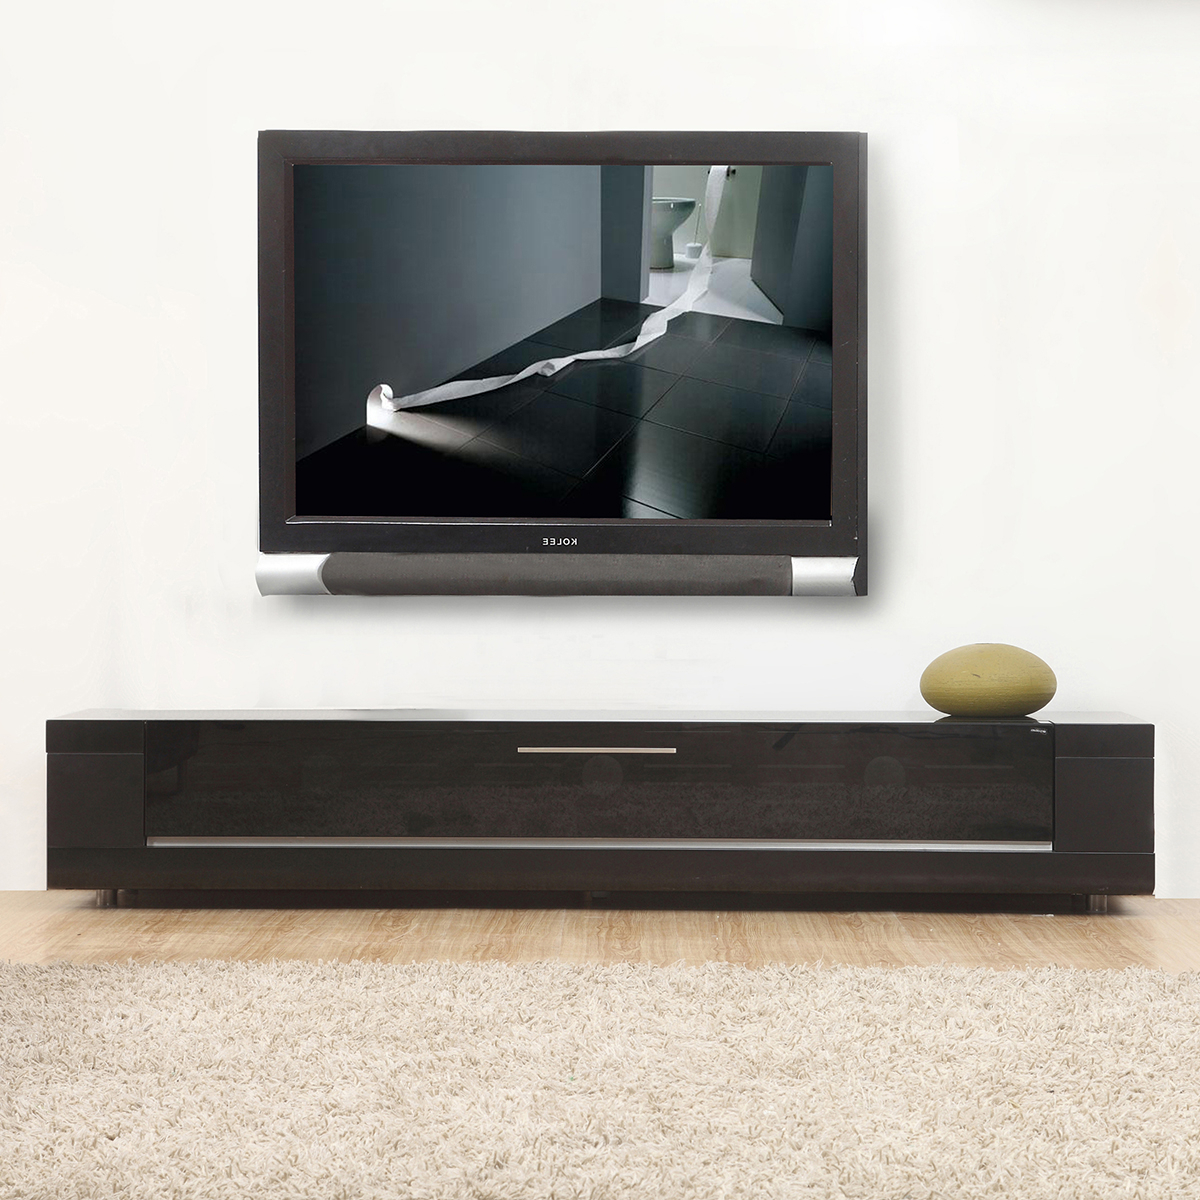 Tv Television Stands 71 & Wider With Regard To Noah 75 Inch Tv Stands (Gallery 4 of 20)